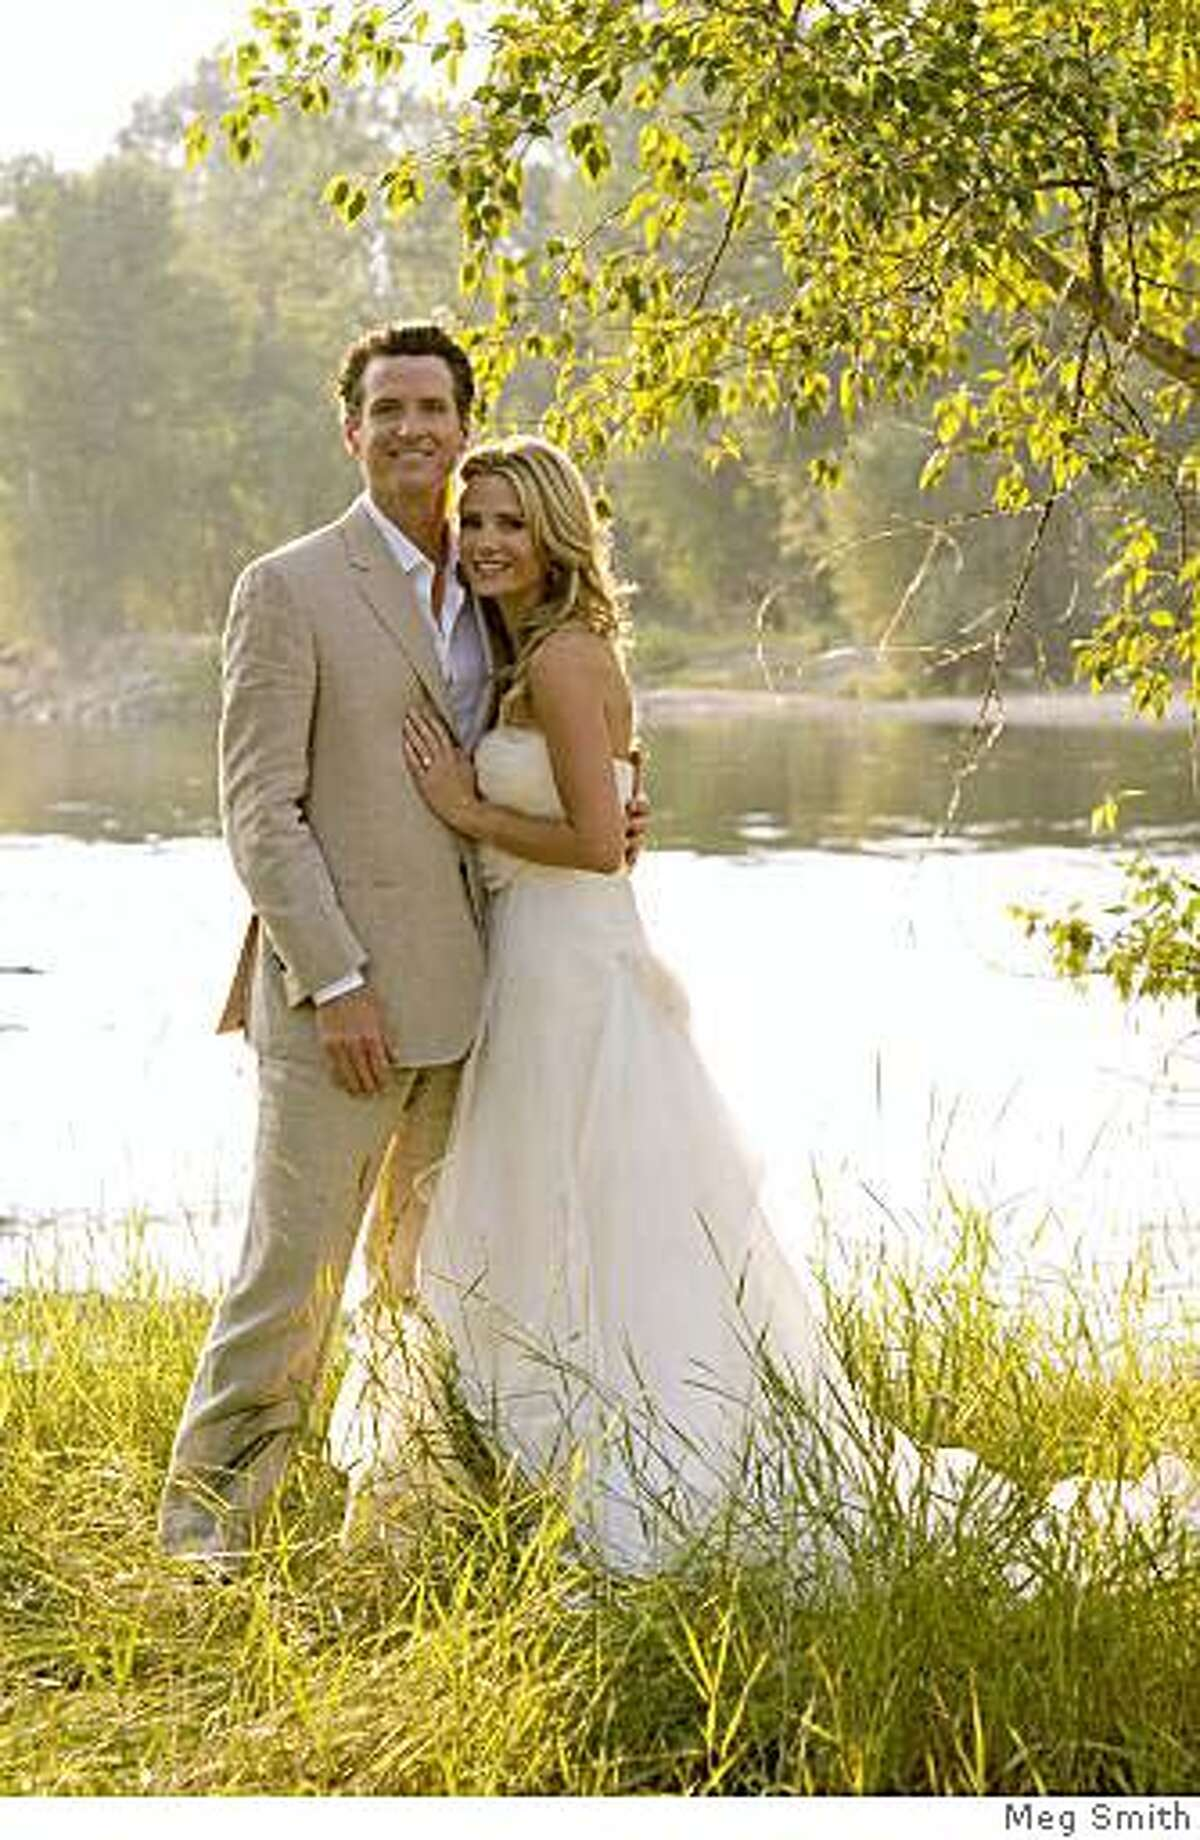 """San Francisco Mayor Gavin Newsom poses with his new wife actress Jennifer Siebel July 26, 2008 in Stevensville, Montana. Newsom and Siebel were married at her parents' Montana ranch. The actress has a recurring role on the TV series """"Life."""" (Meg Smith via Getty Images)"""